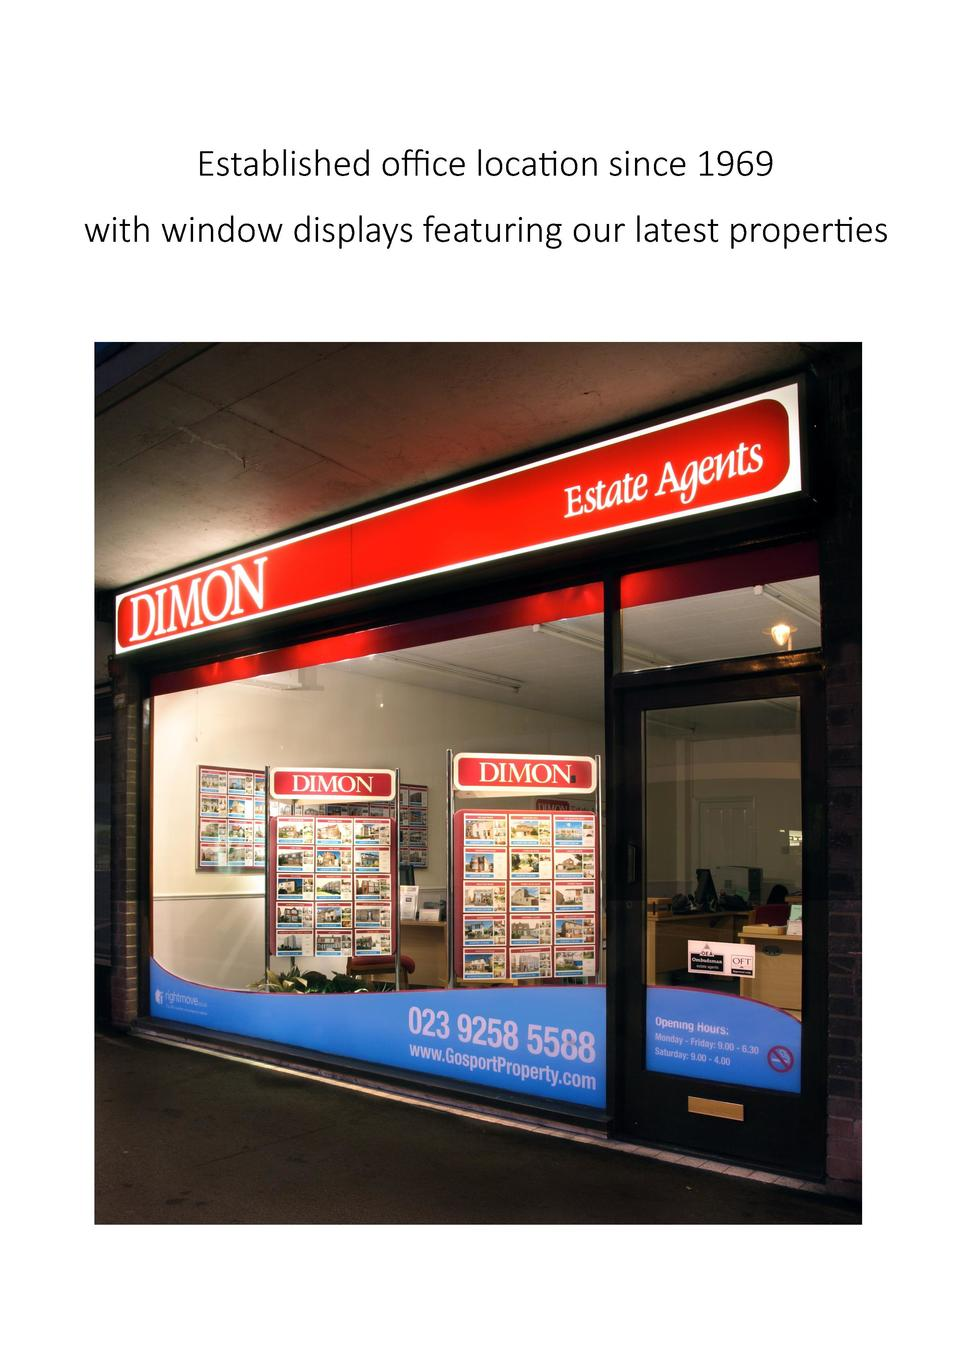 Established office location since 1969 with window displays featuring our latest properties